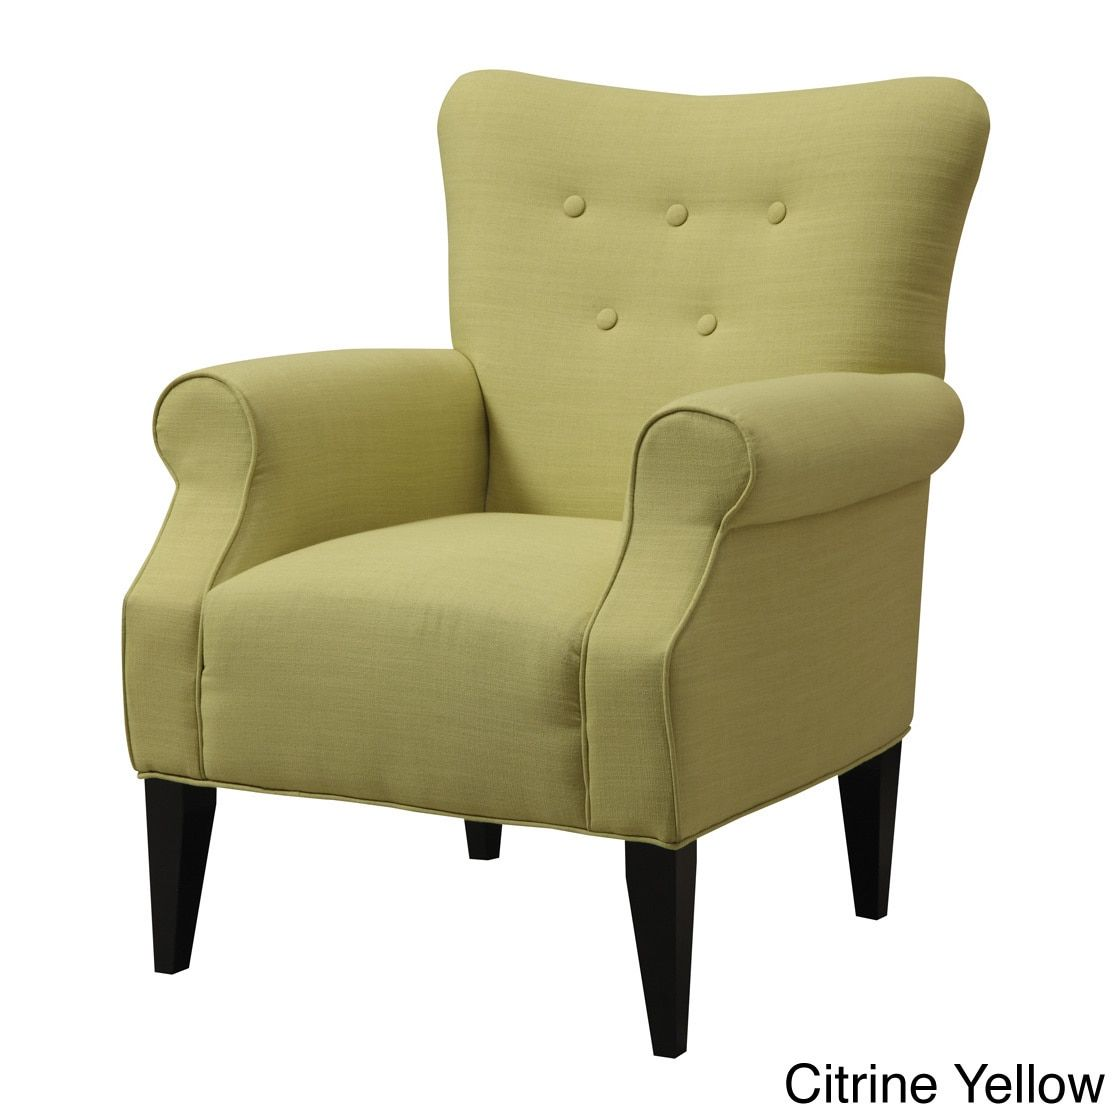 Emerald Lydia Accent Chair (Citrine Yellow), Emerald Home